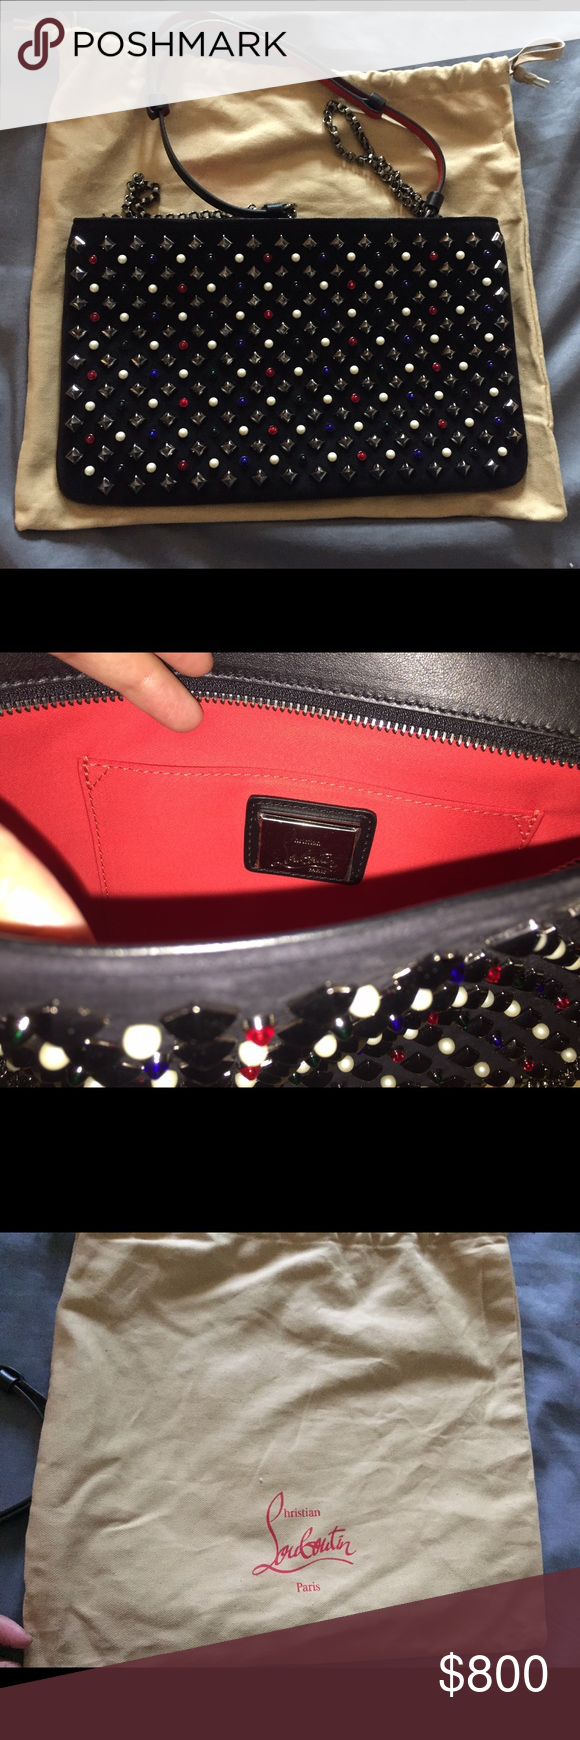 Christian Louboutin purse! Brand new. Never used got as a present. Has handles to carry on shoulder. Christian Louboutin Bags Shoulder Bags